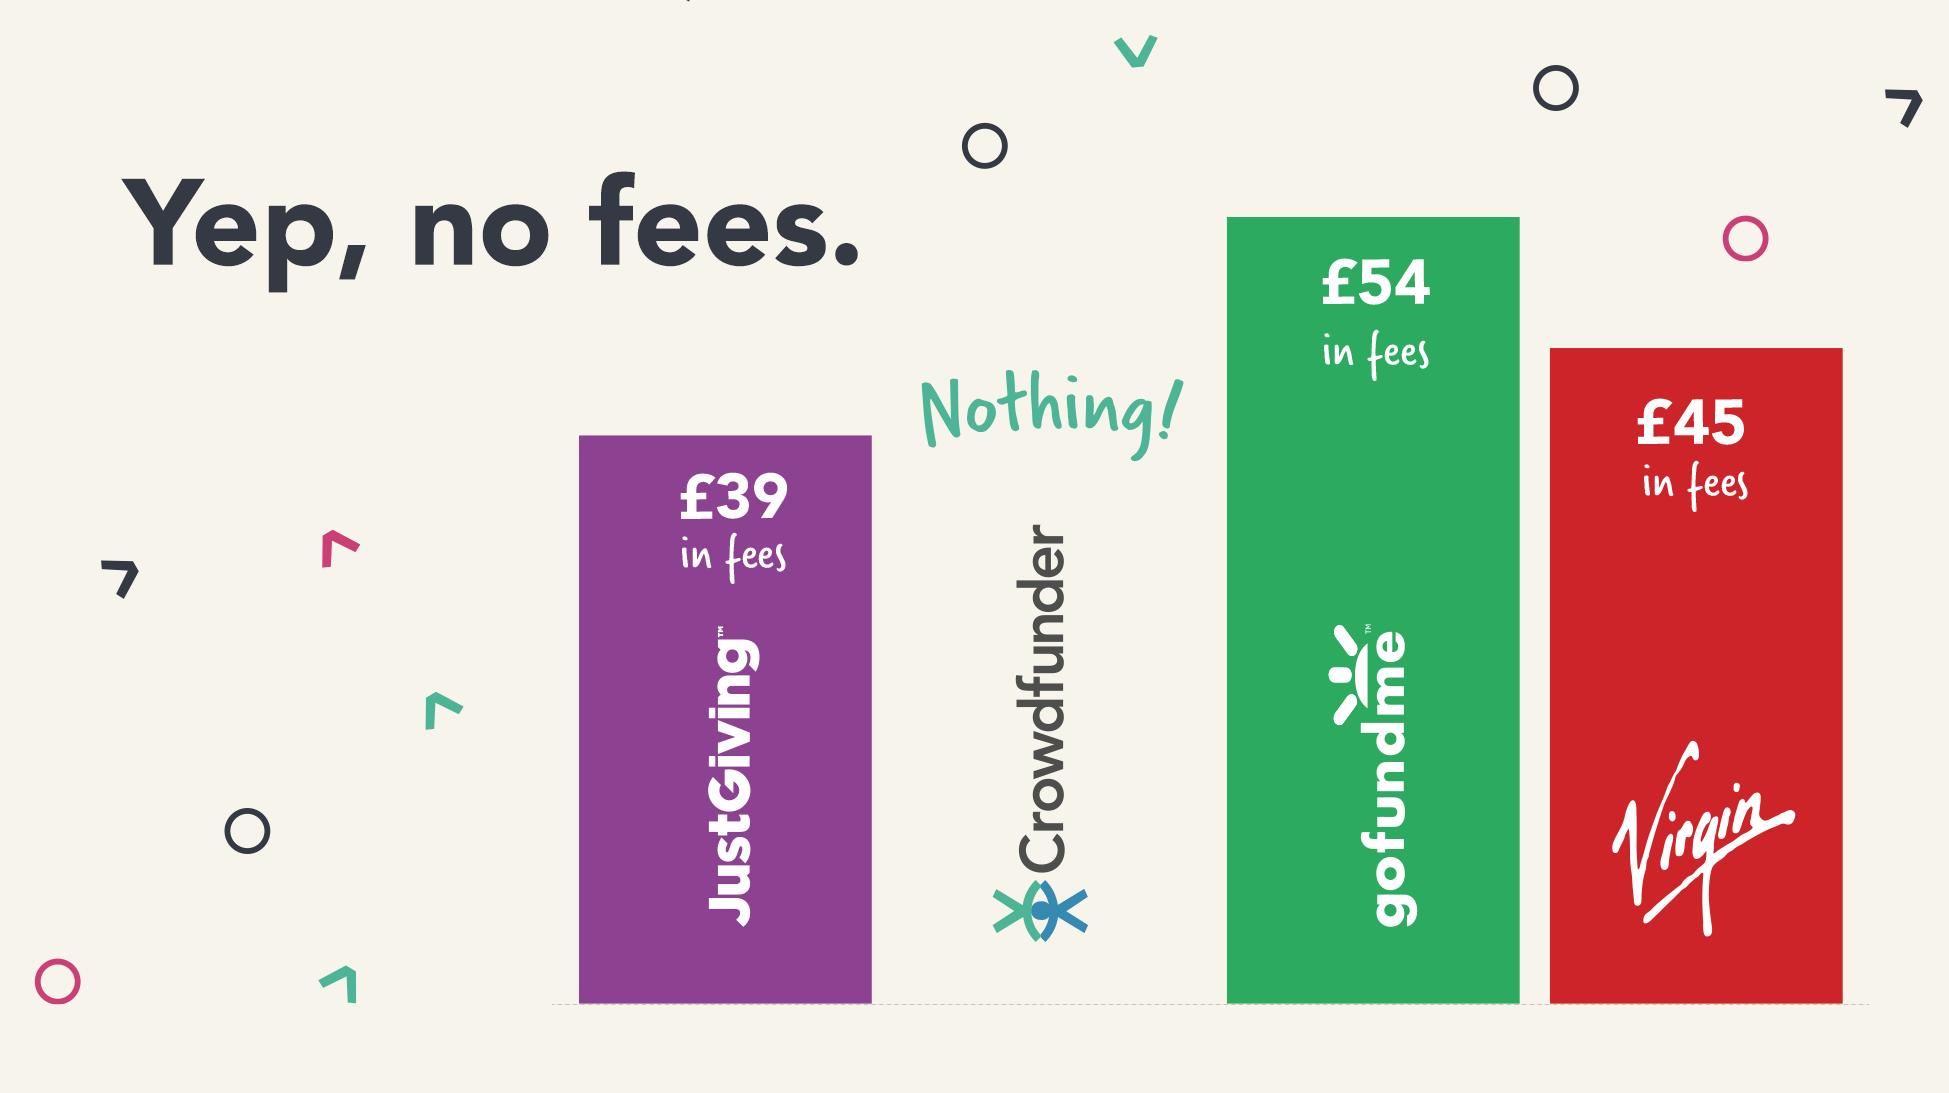 A comparison graph showing Crowdfunder as having no fees compared with Just Giving (£39), GoFundMe (£54), and Virgin (£45).